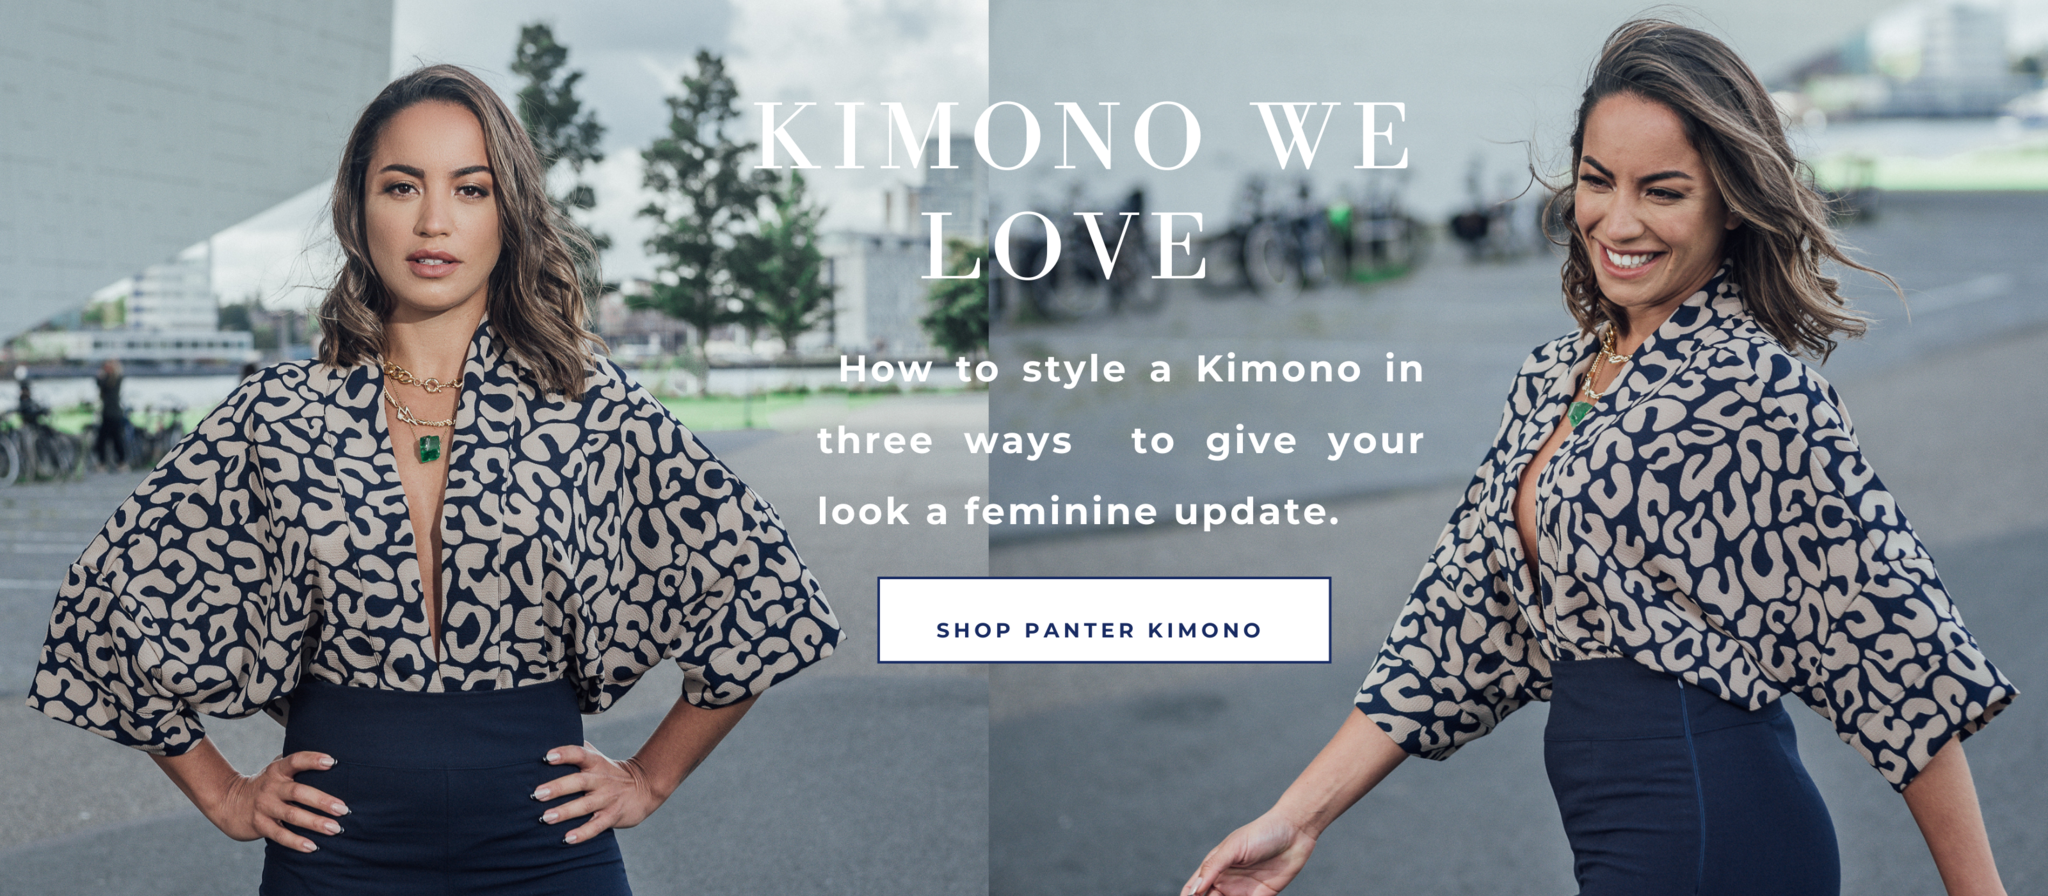 kimono's the perfect layers to worn with anything in your closet, from skinny jeans and heels or layered over a mini dress for some serious '70s vibes.